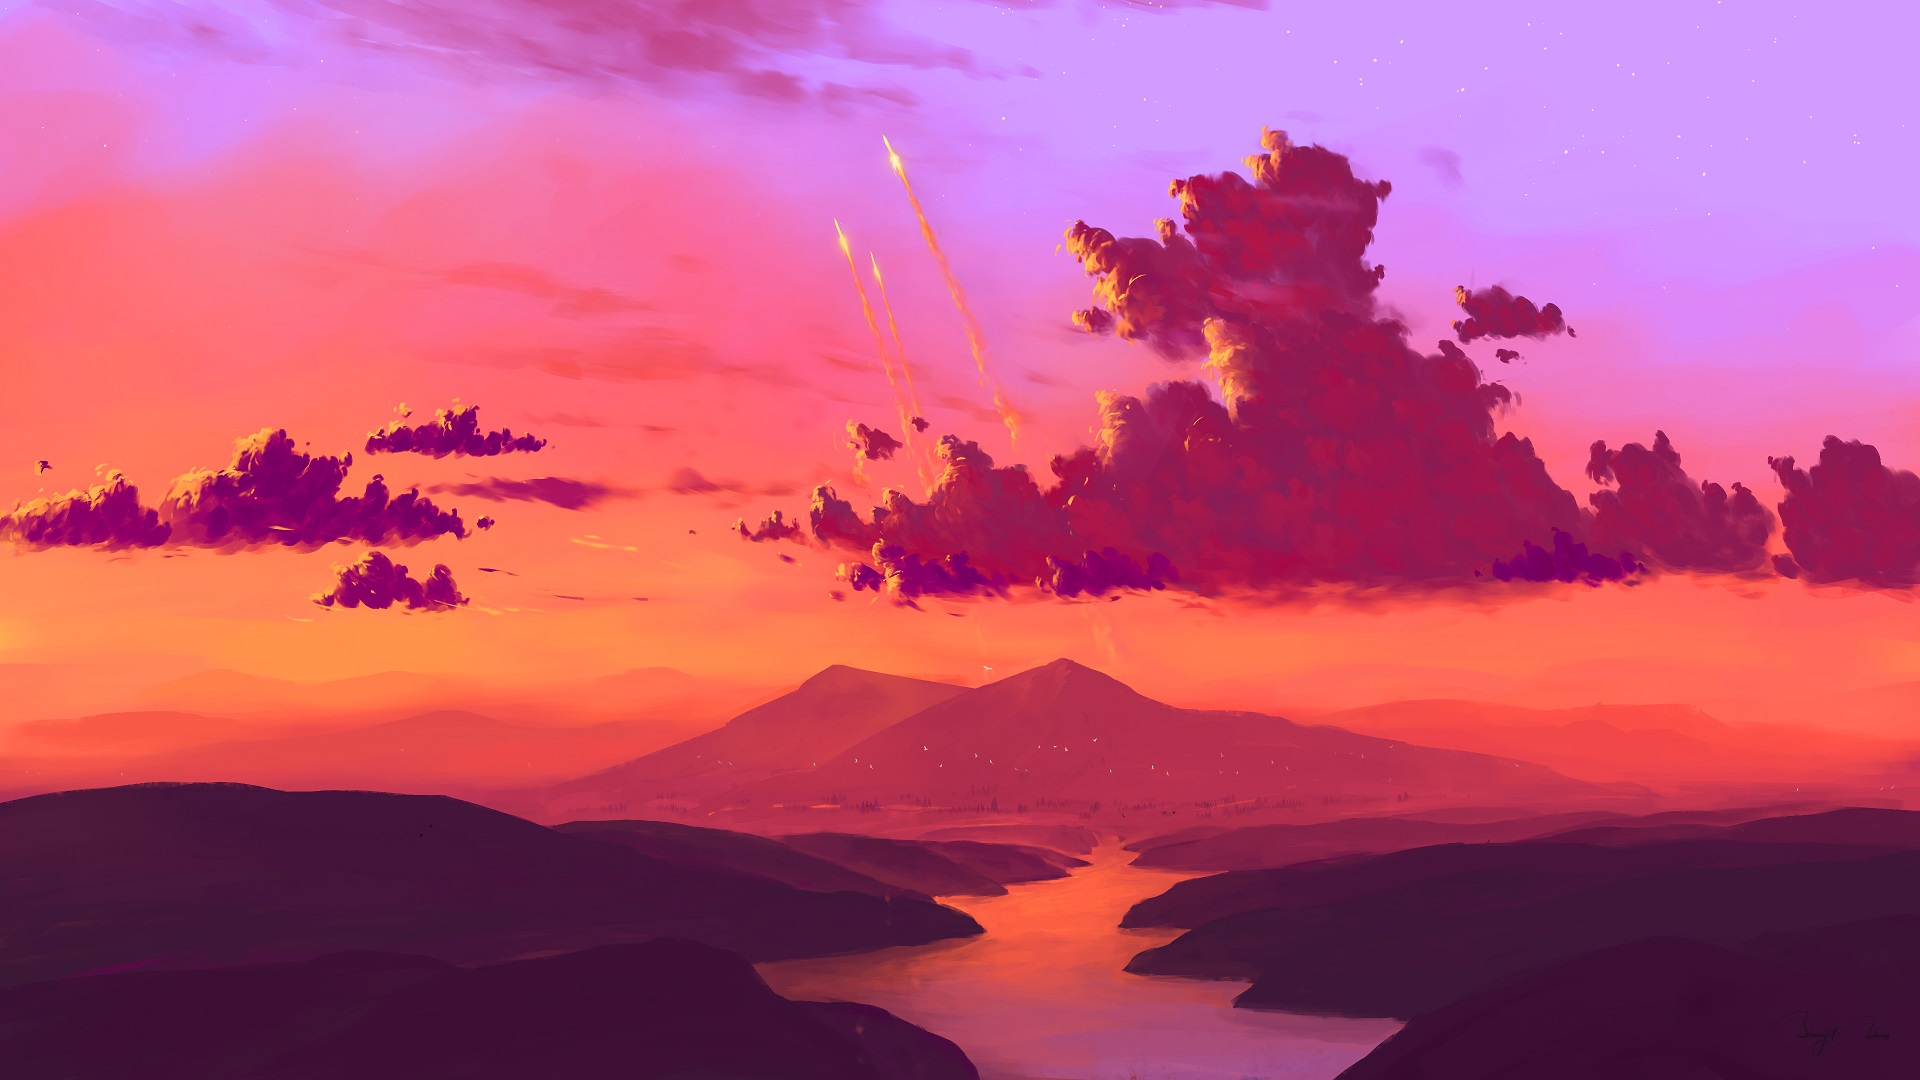 BEAUTIFUL LANDSCAPE ILLUSTRATION TO USE AS DESKTOP WALLPAPWER FOR HD 1080P SCREEN